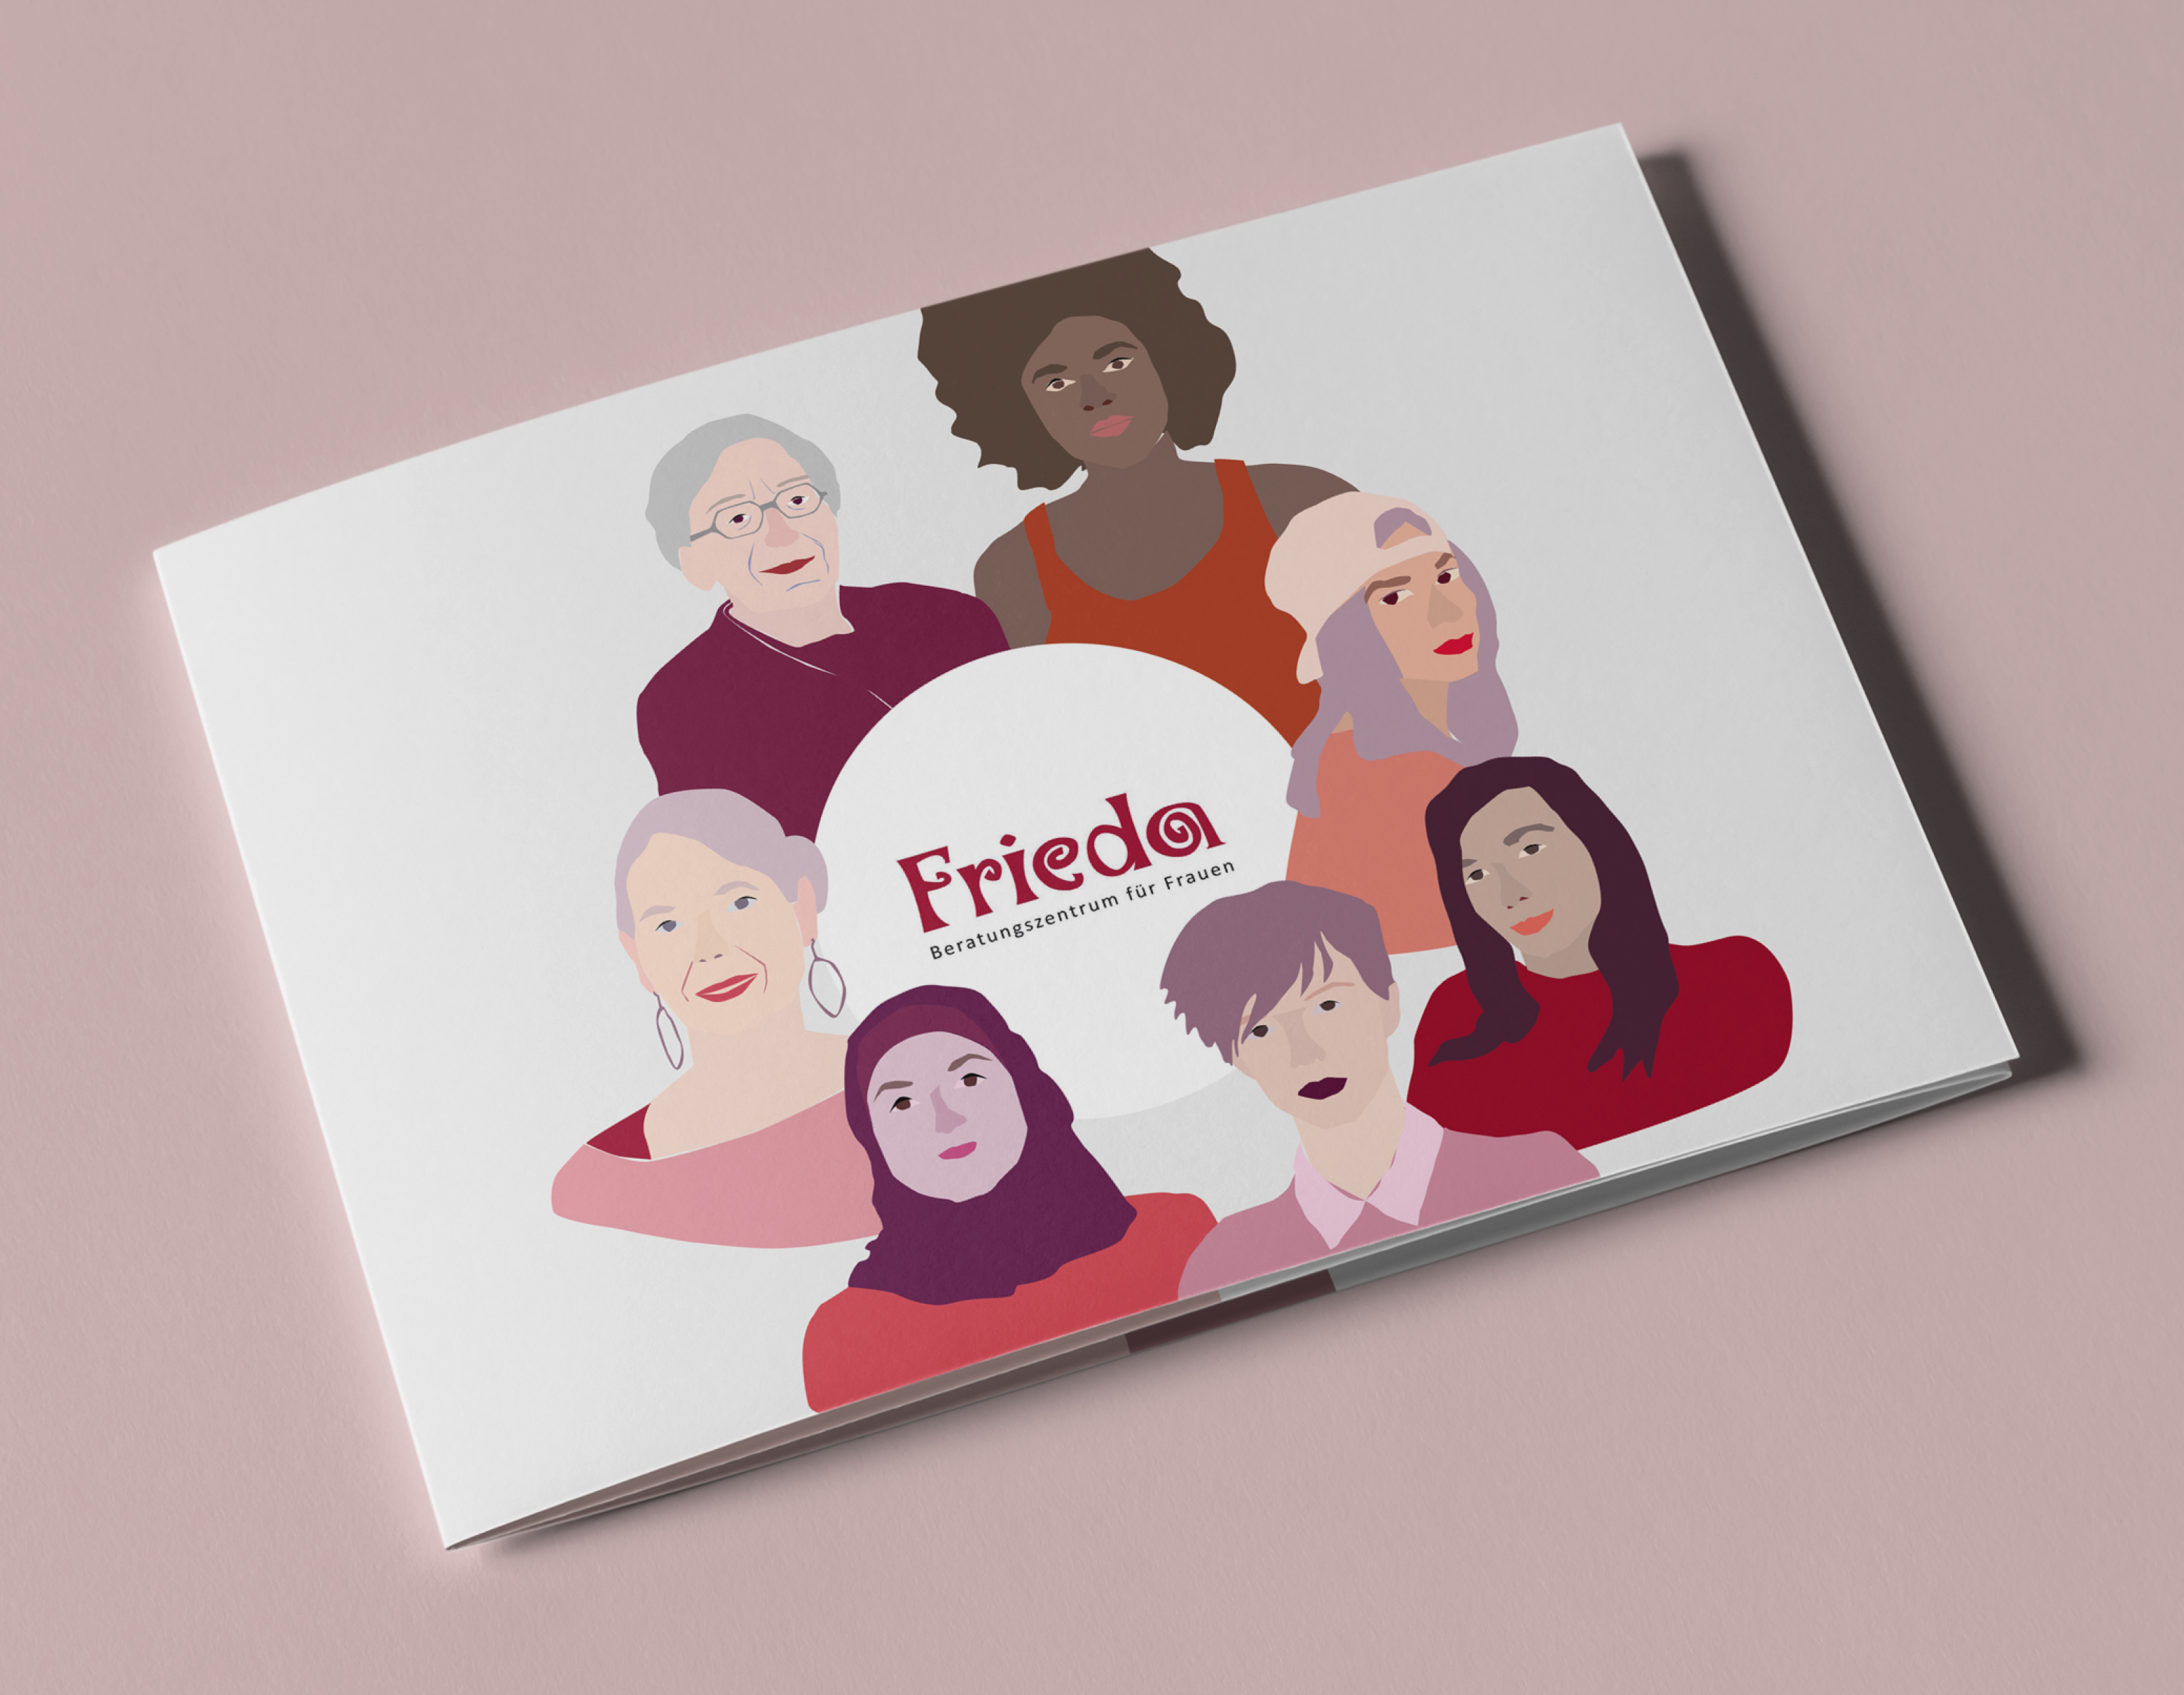 Frieda-Cover-Illustration-9